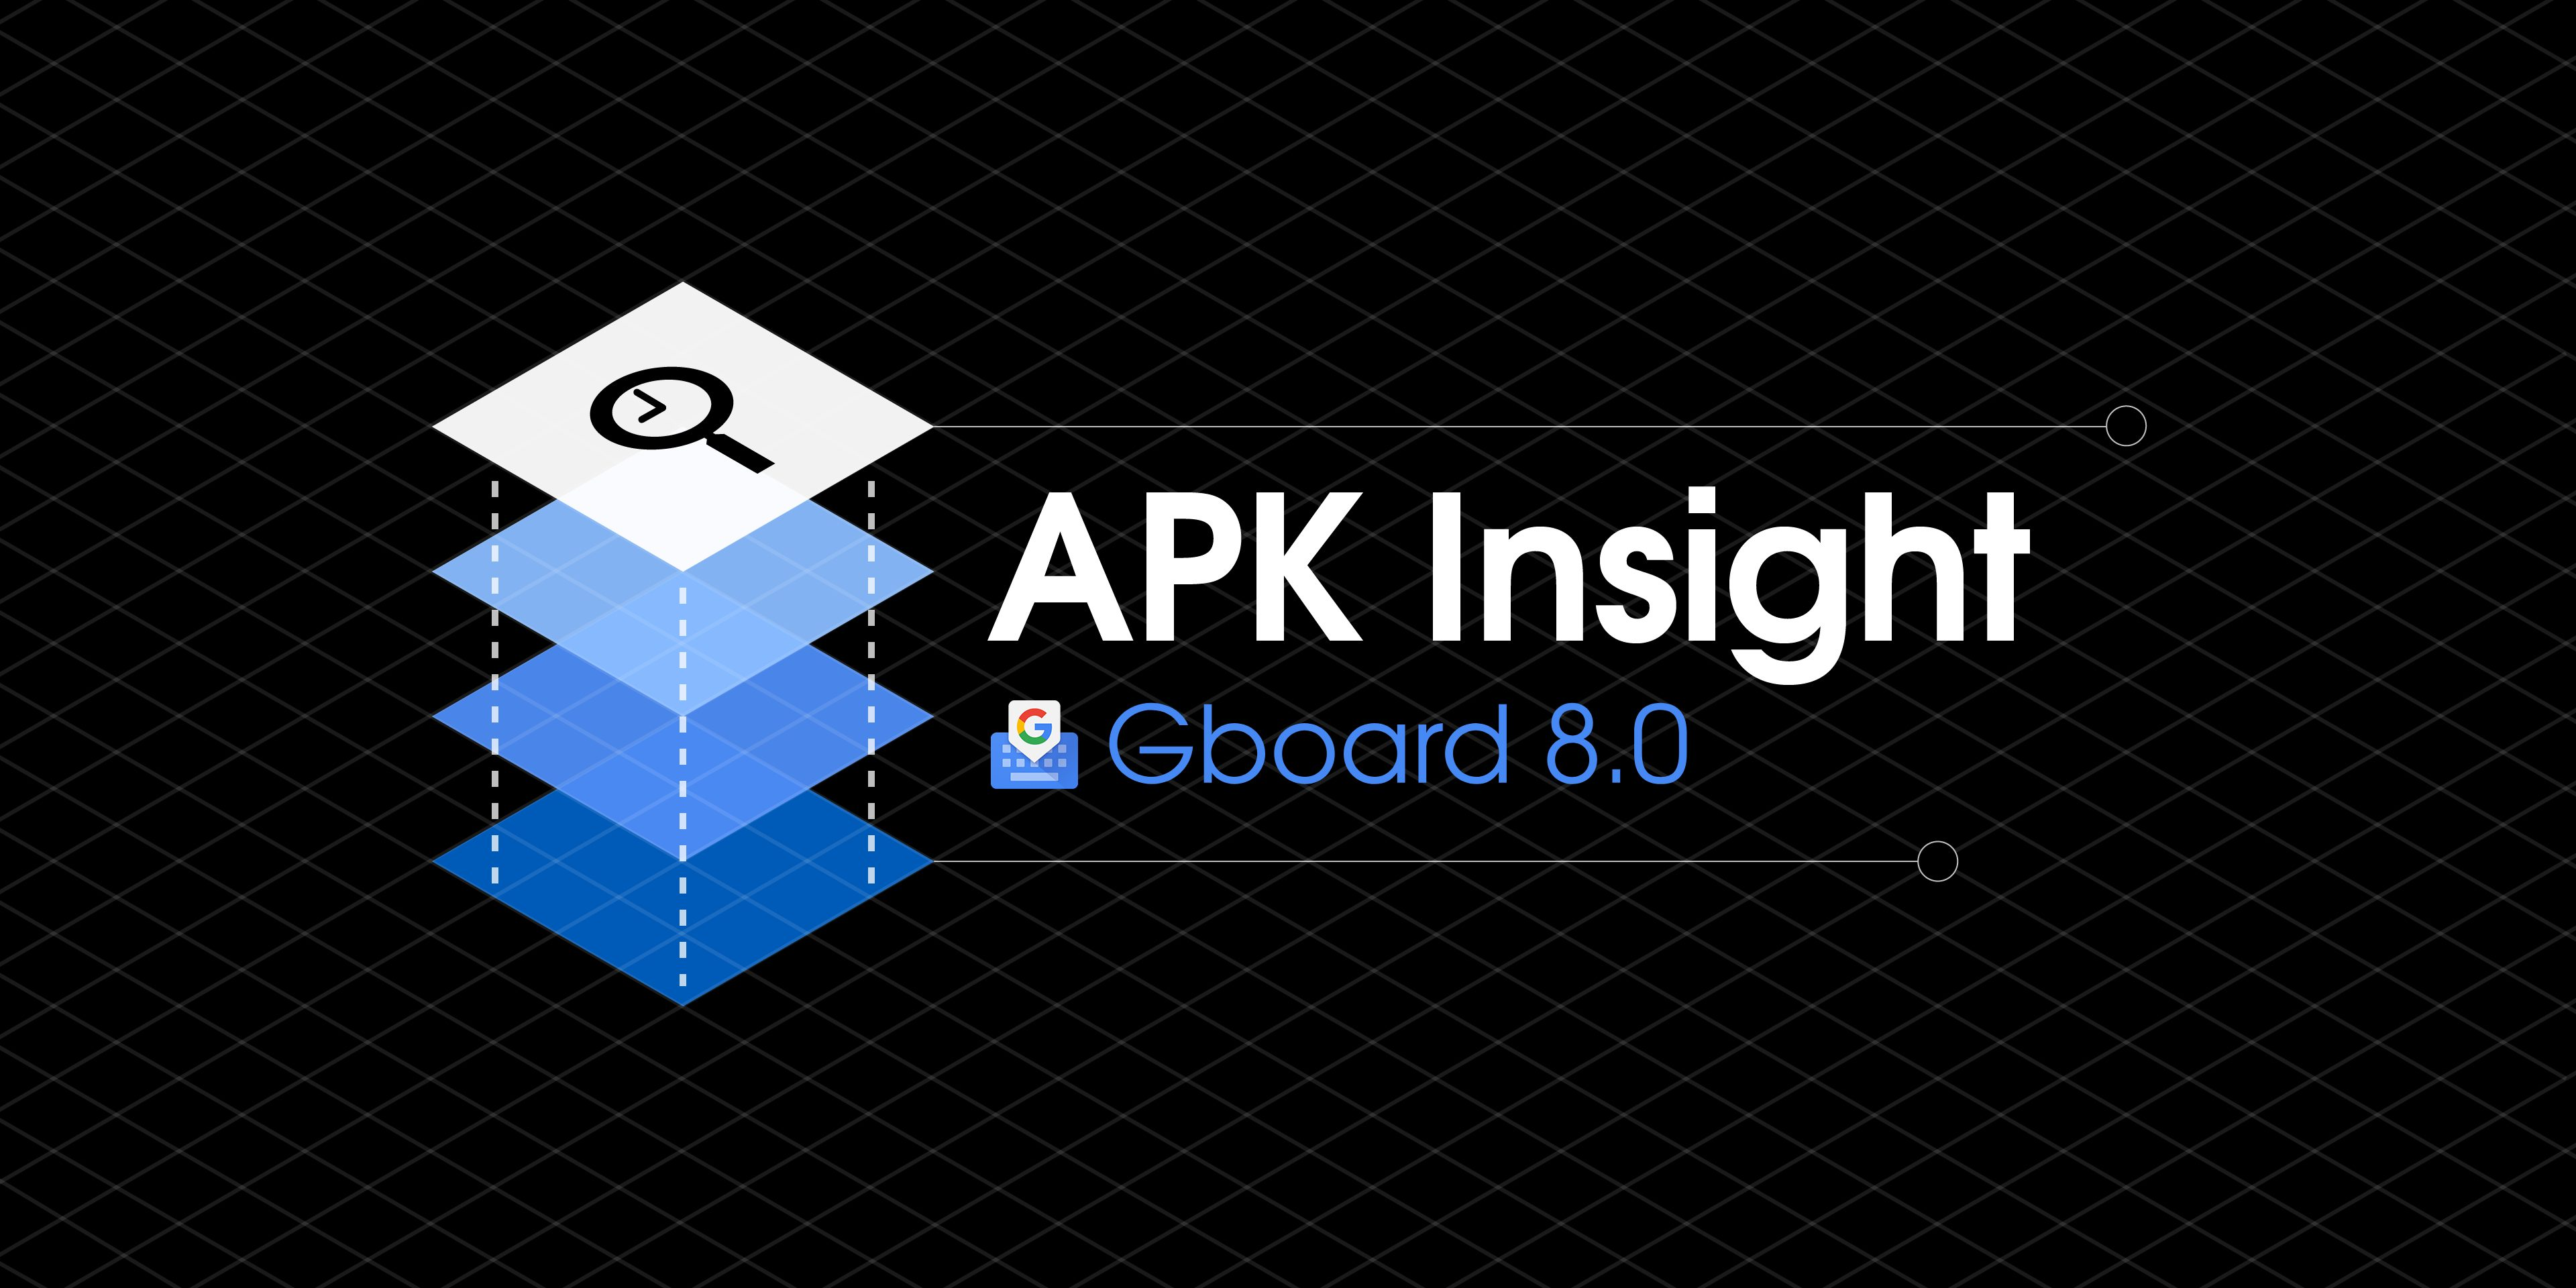 [Update: Material Theme emoji, emoticon pickers] Gboard 8.0 preps Clipboard, sharing languages [APK Insight]